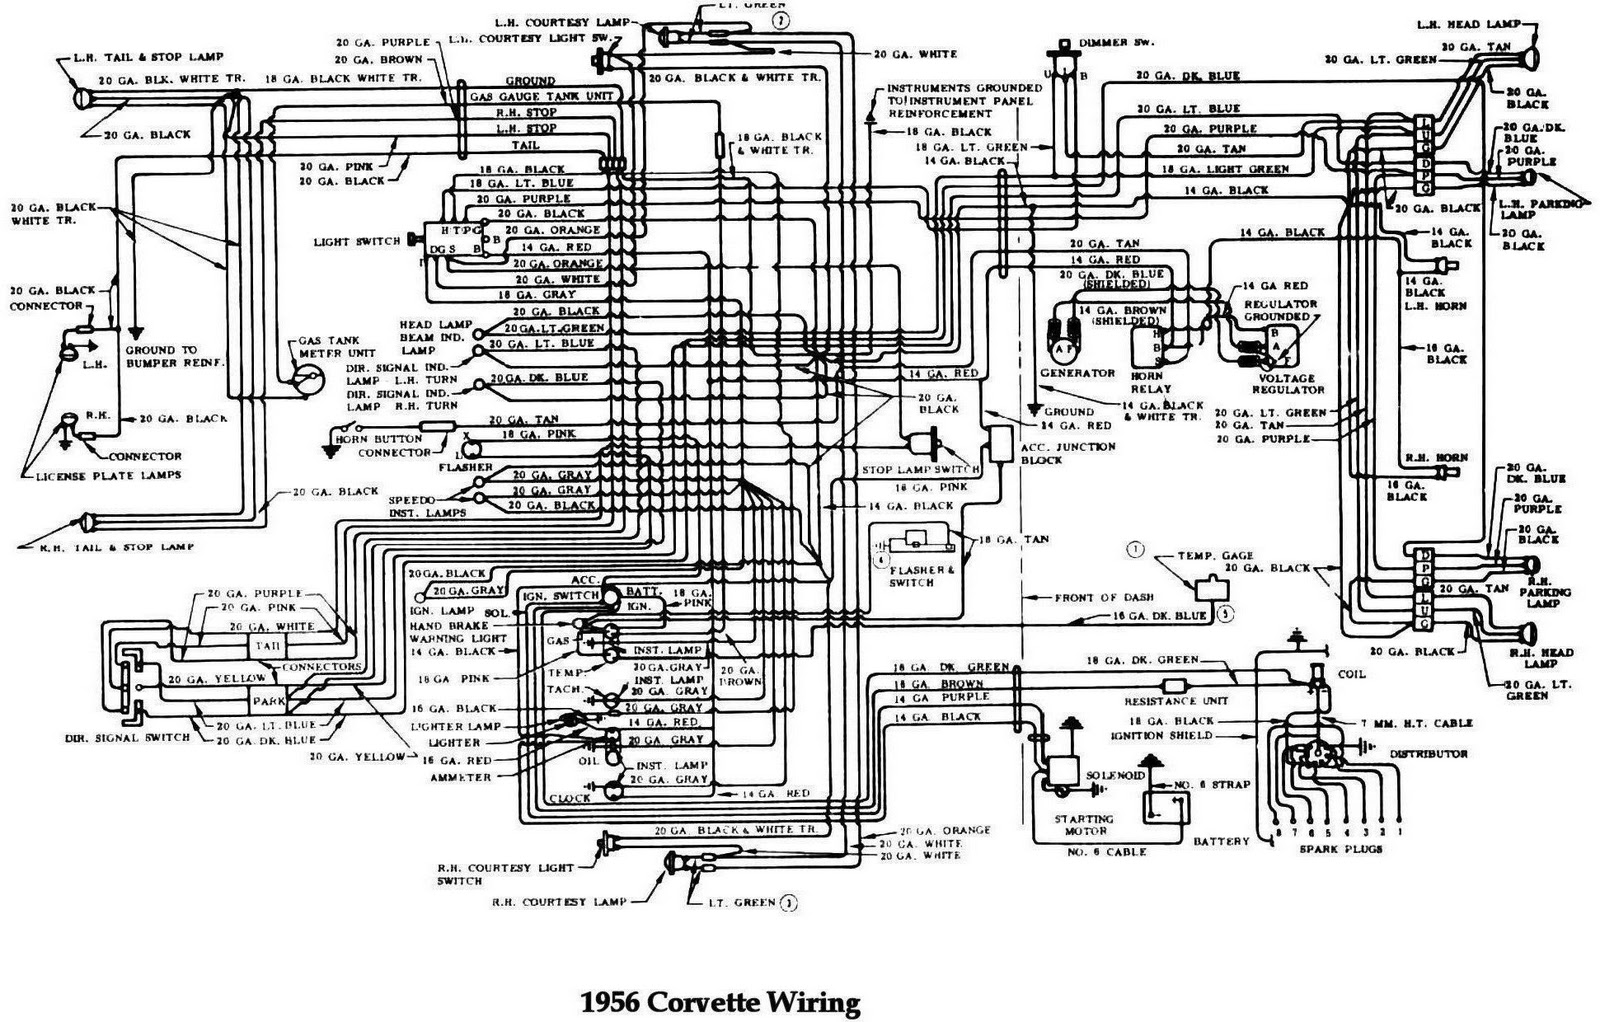 Ford Fairlane Headlight Wiring Diagram Ford Fairlane Radio Wiring Diagram Odicis